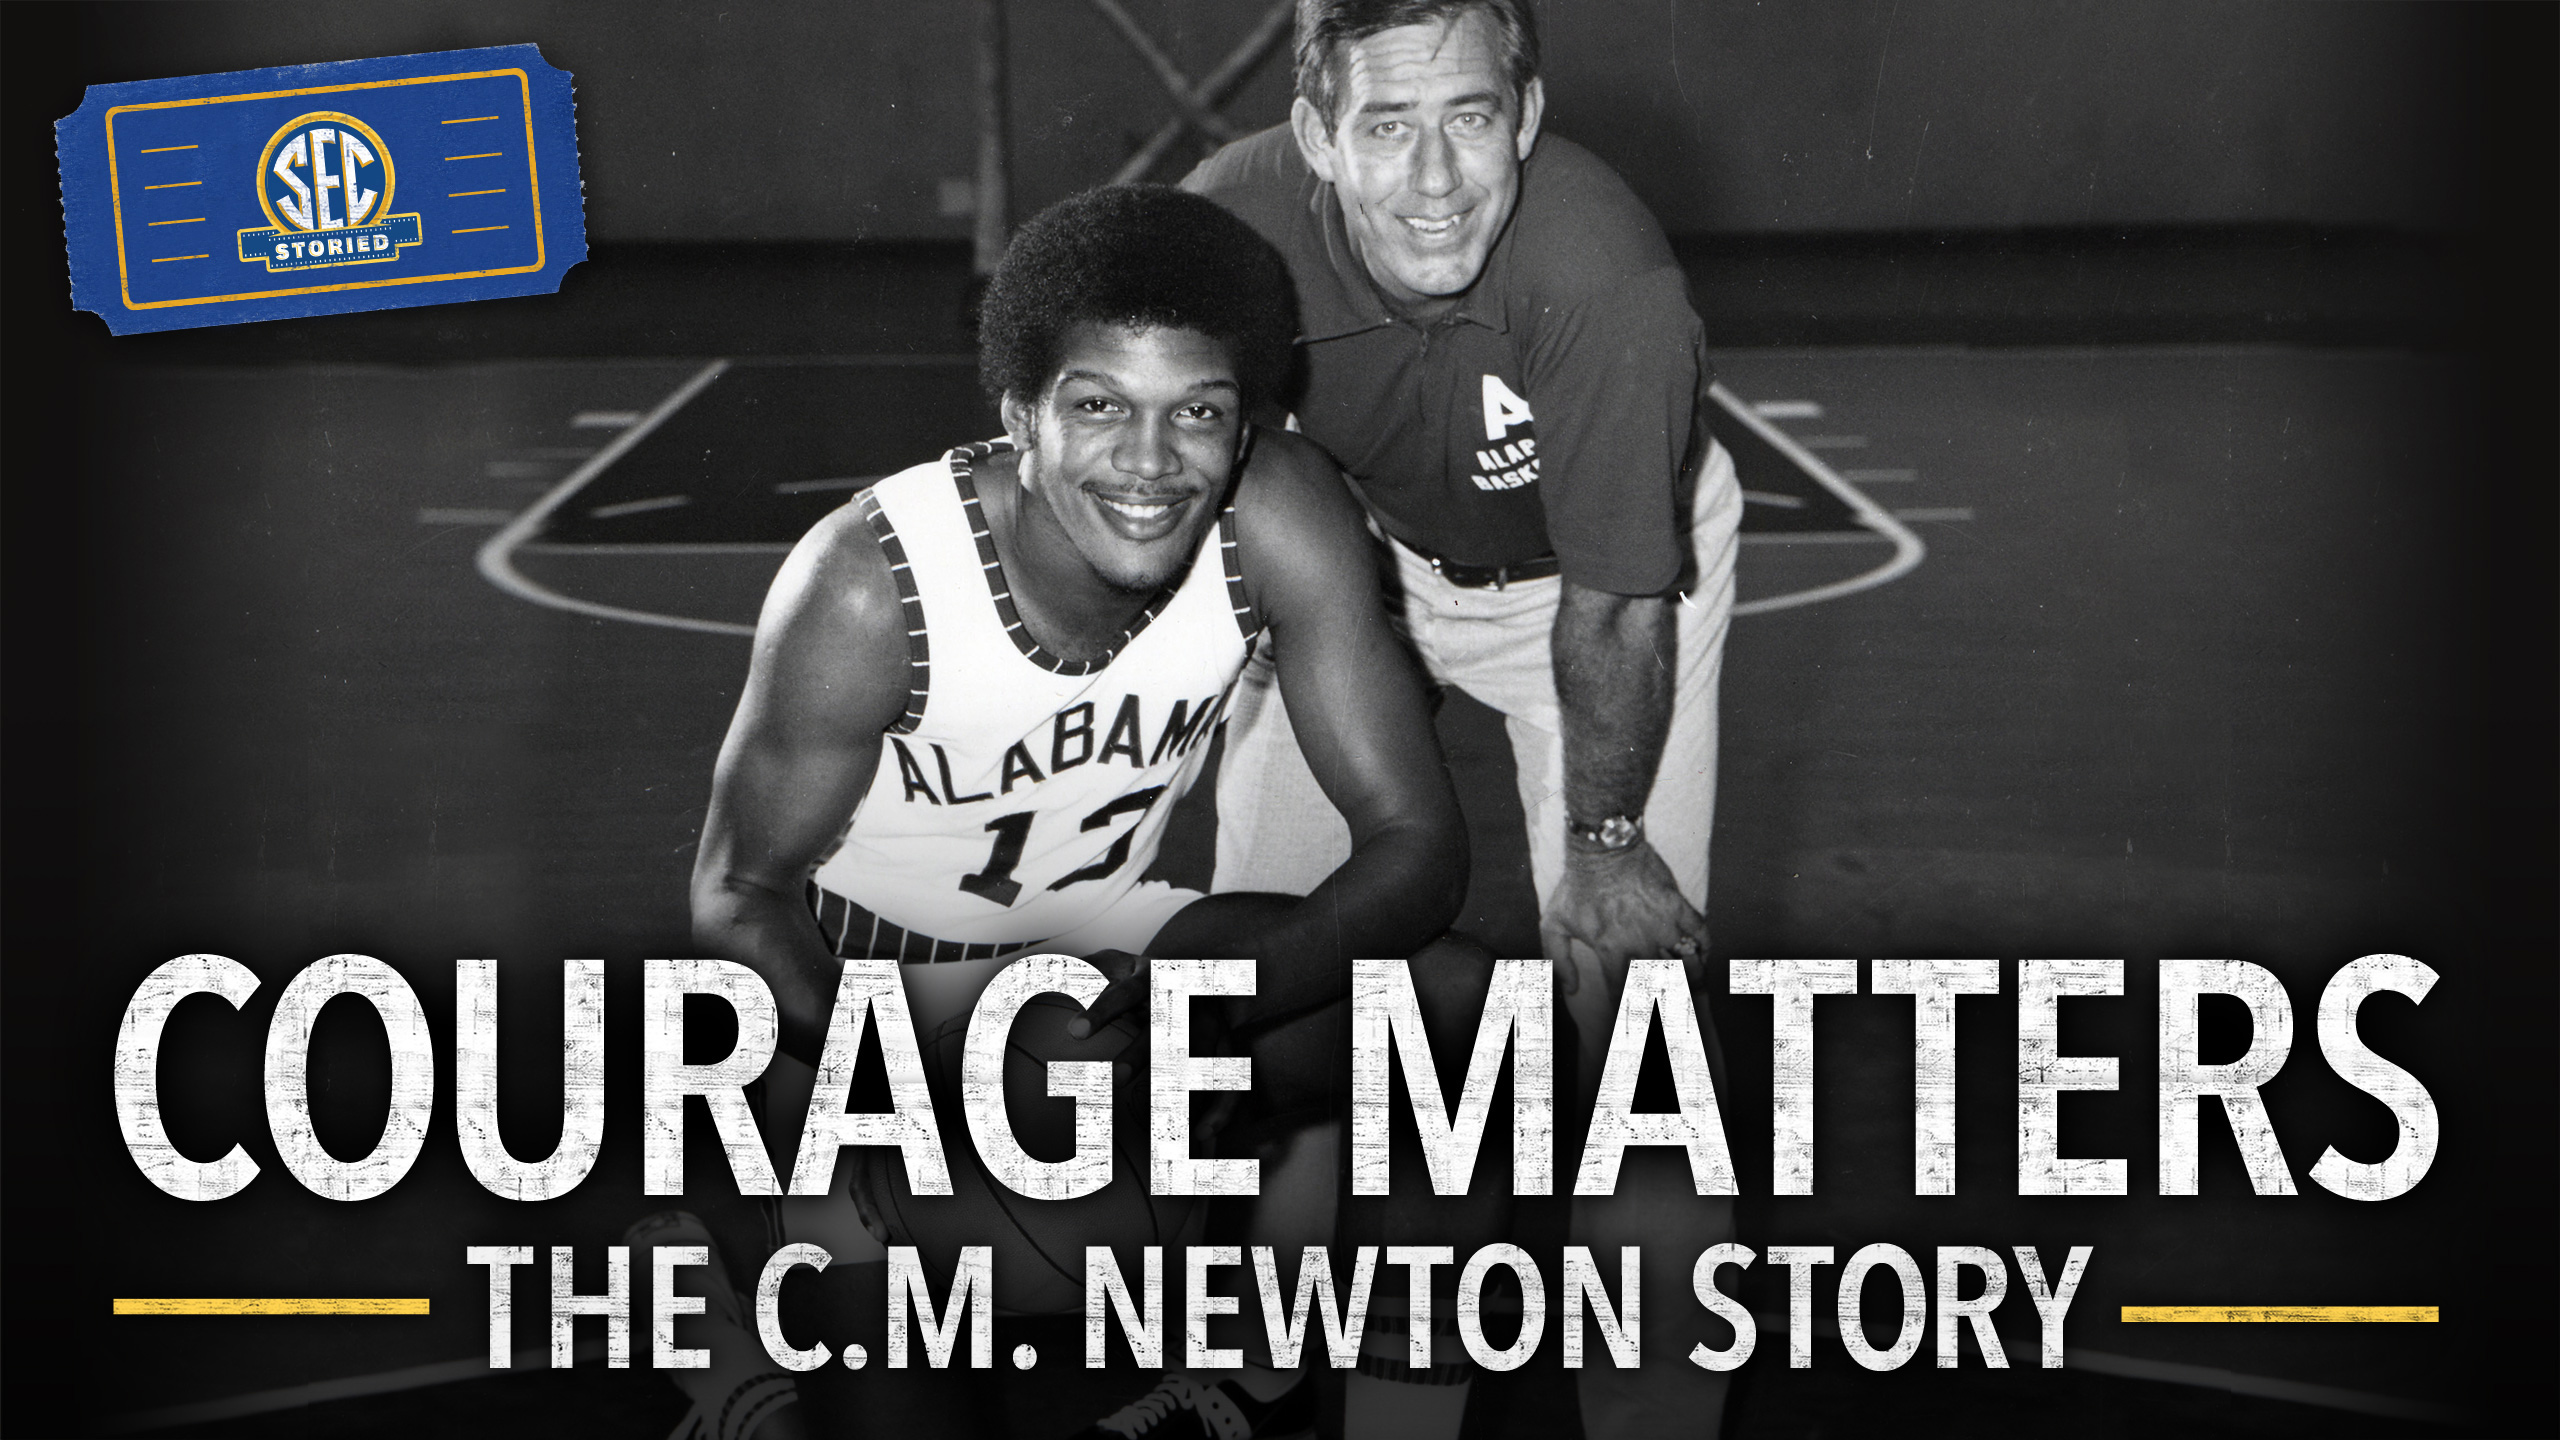 SEC Storied: Courage Matters Presented by Regions Bank